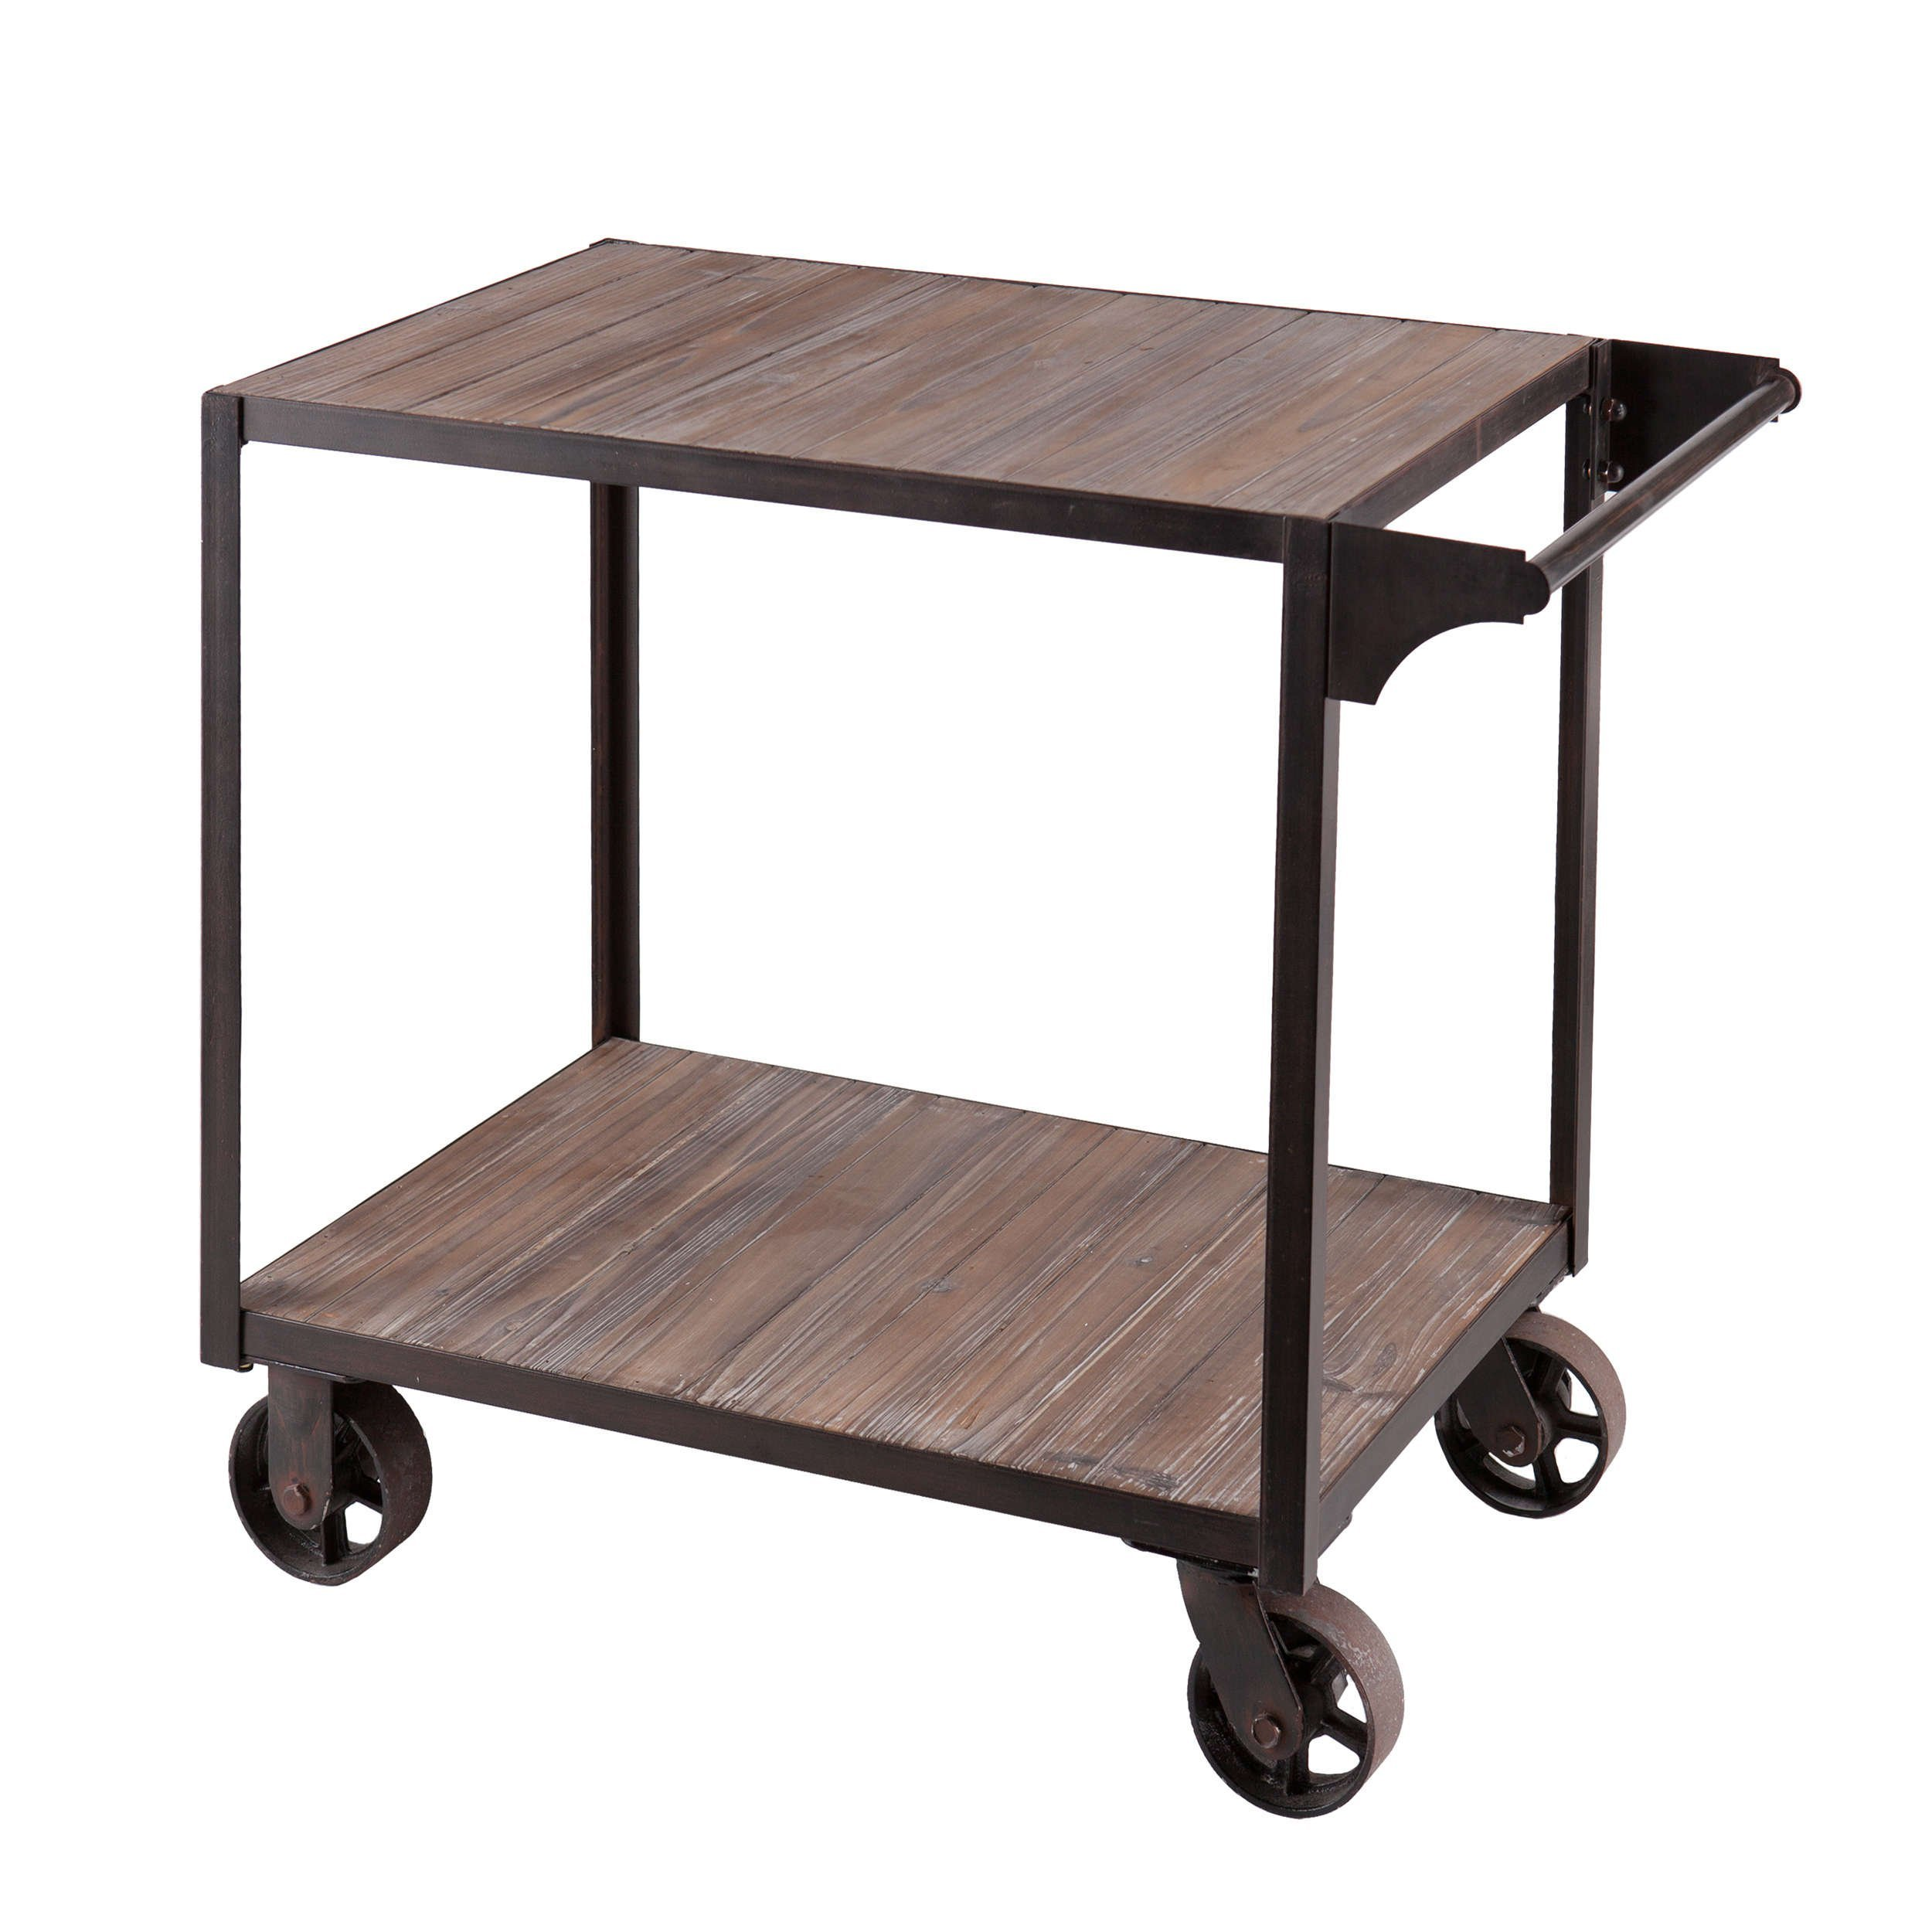 Industrial Style Kitchen Bar Serving Rolling Wine Cart Wooden Top with Bottom Shelf | Metal Frame, Black Finish - Includes Modhaus Living Pen